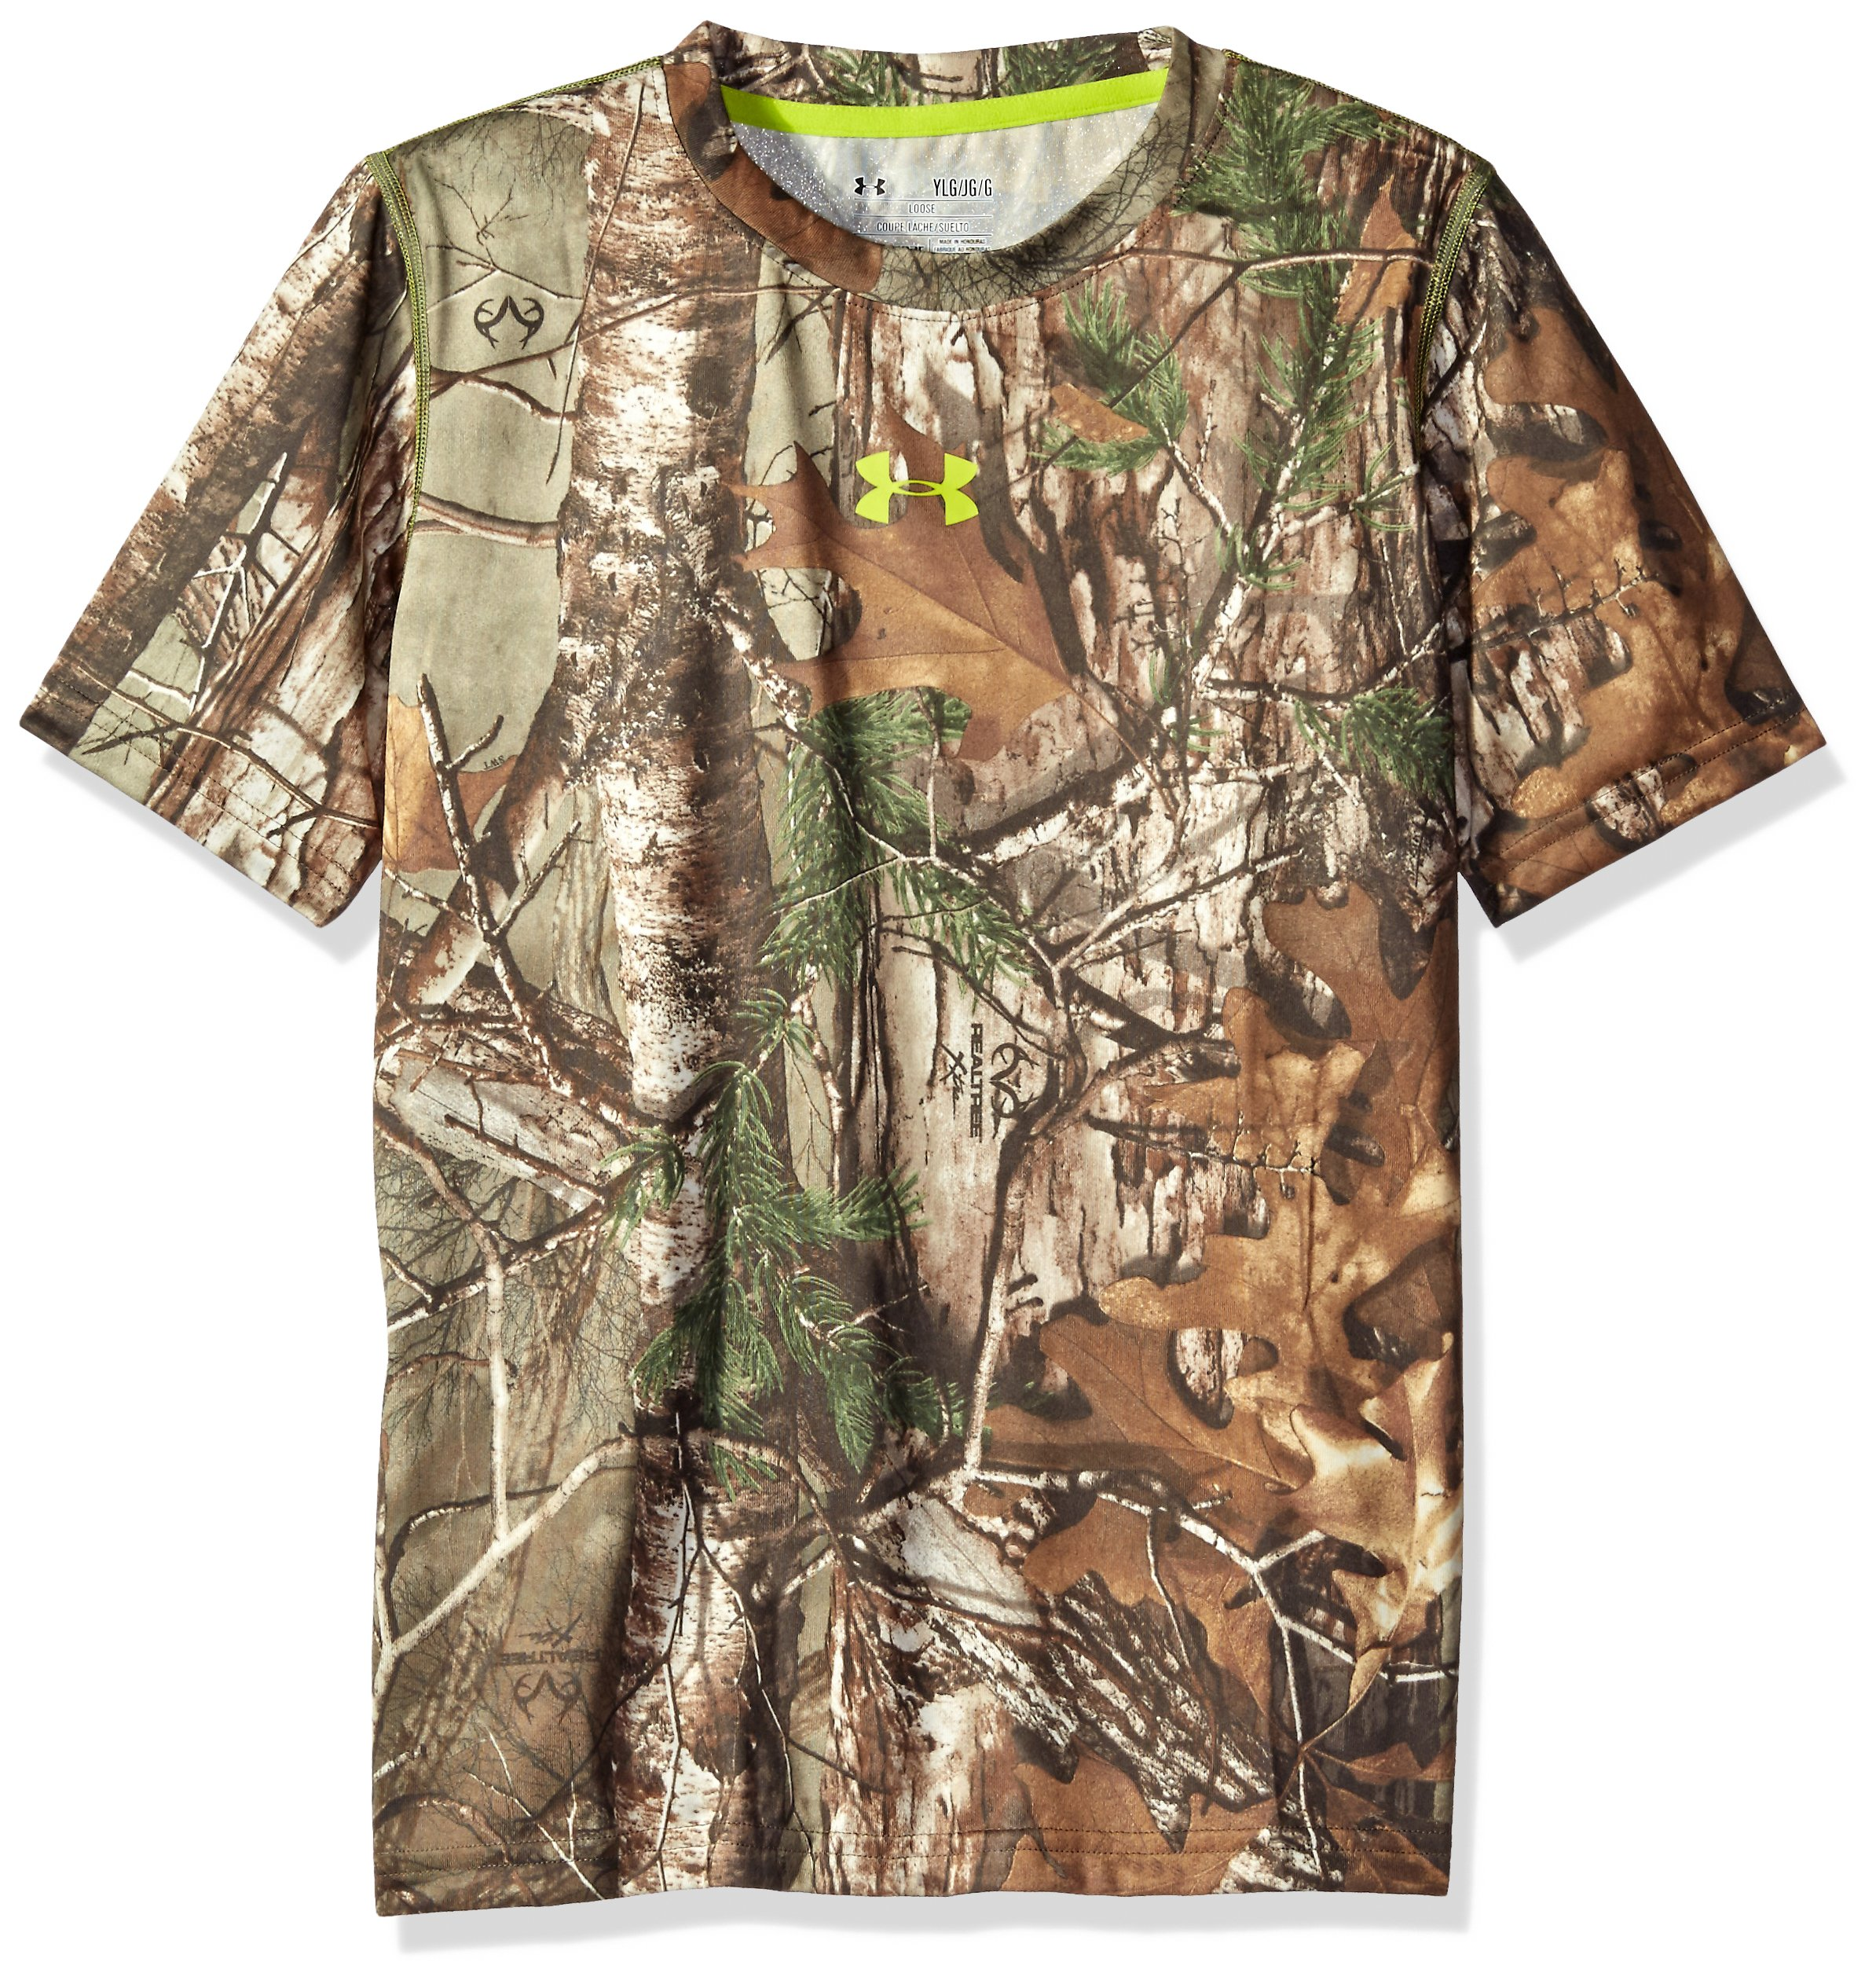 Under Armour Boys' Tech Scent Control T-Shirt, Realtree Ap-Xtra /Velocity, Youth X-Large by Under Armour